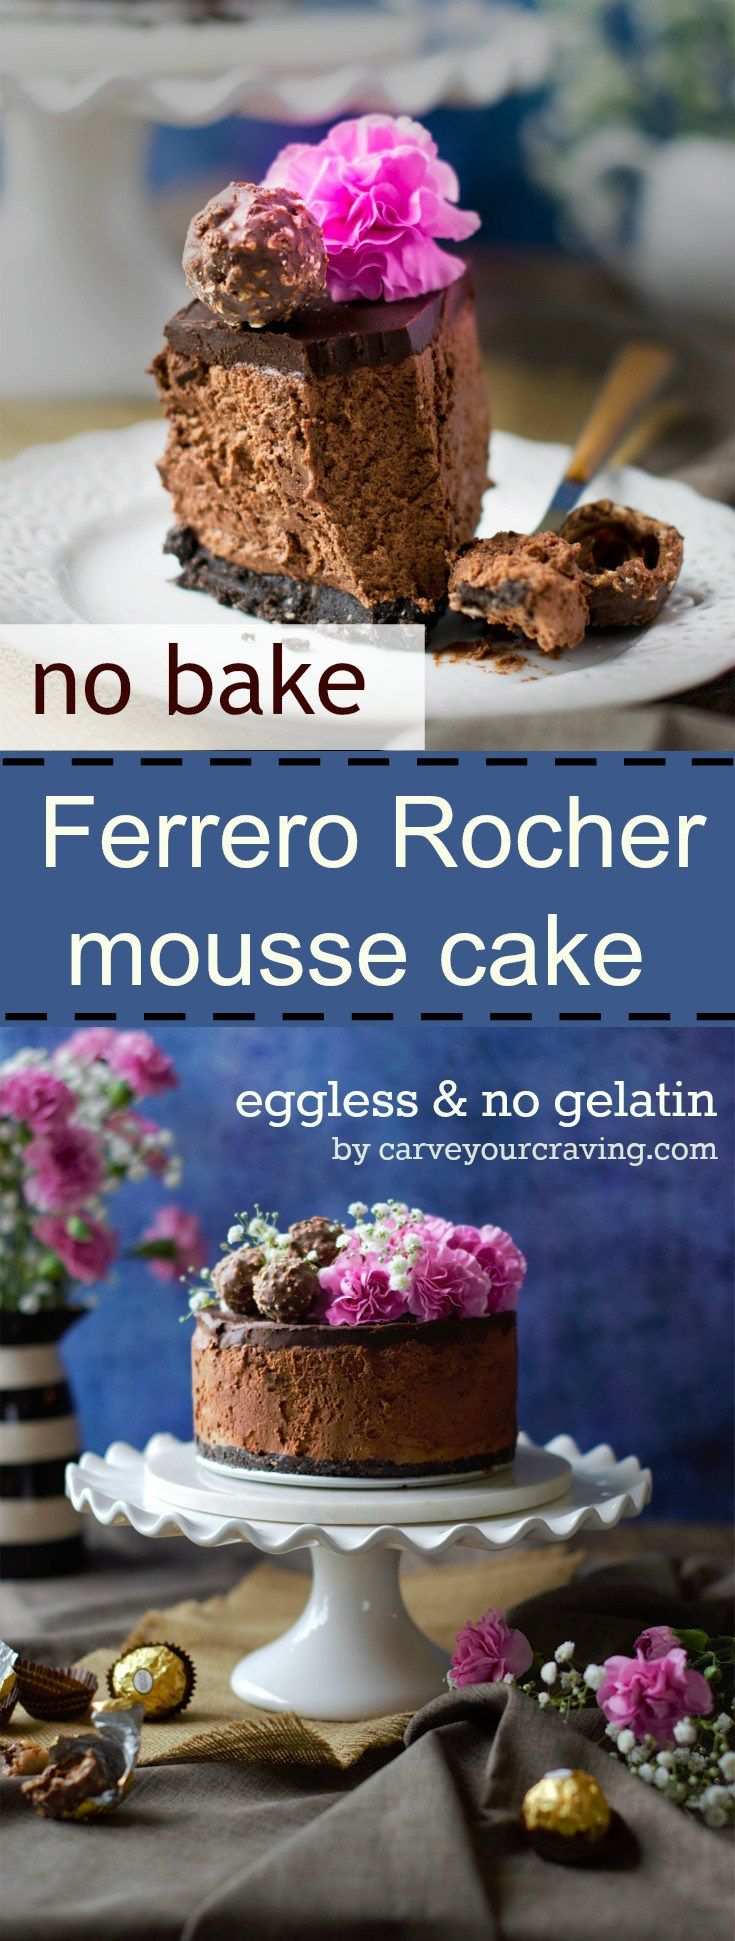 No bake eggless ferrero rocher mousse cake. The easiest impressive cake for any occasion.